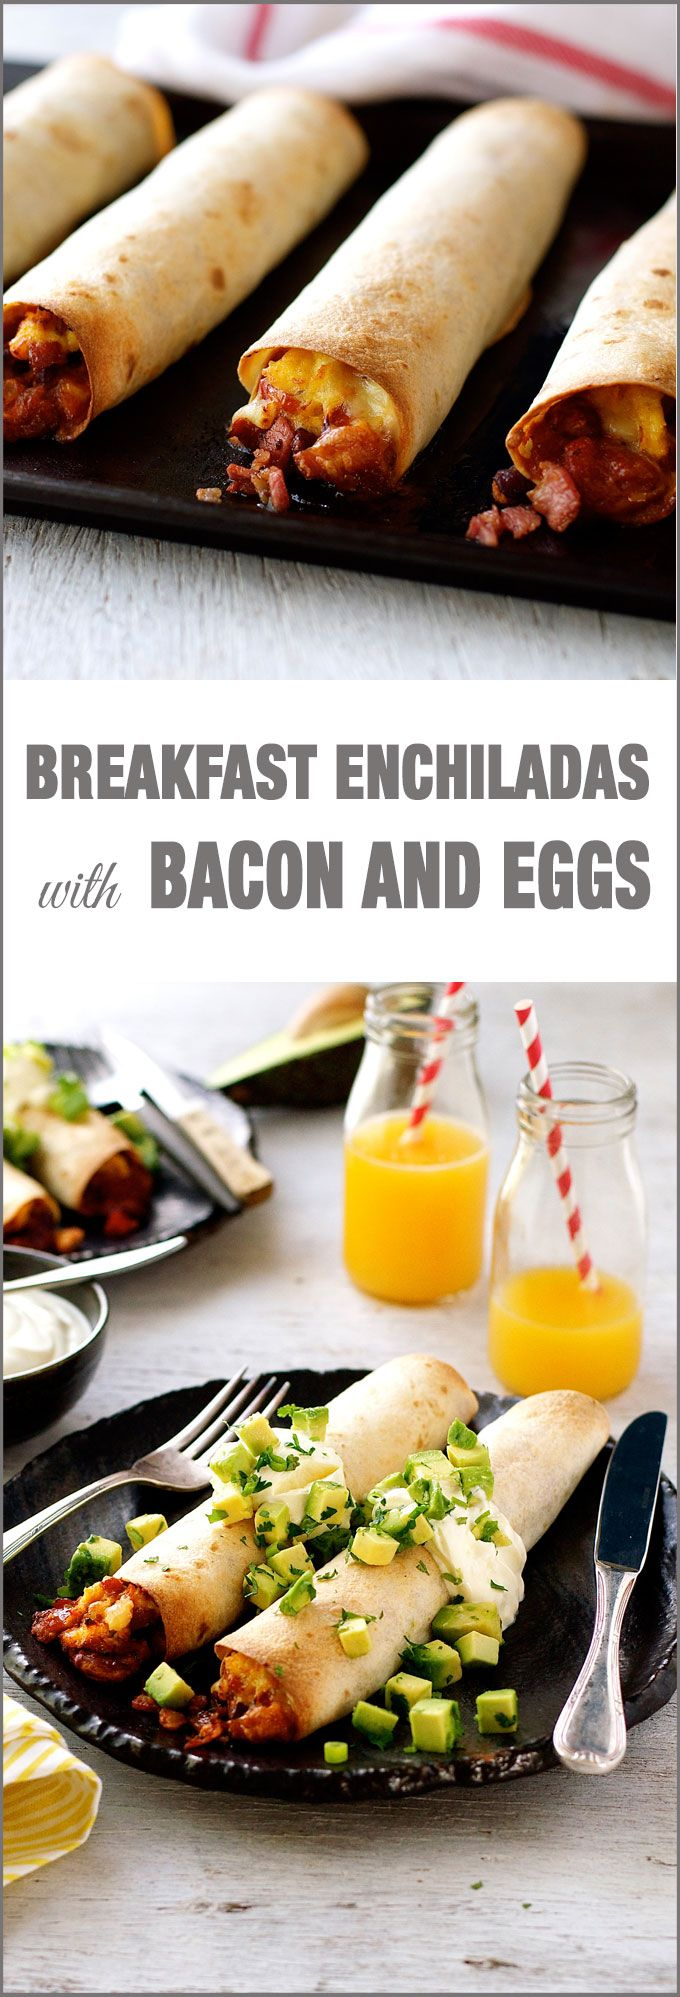 Bacon and Egg Breakfast Enchiladas - bacon and eggs with Mexican tomato beans and cheese wrapped in a tortilla then baked until crispy. What a way to start a day!